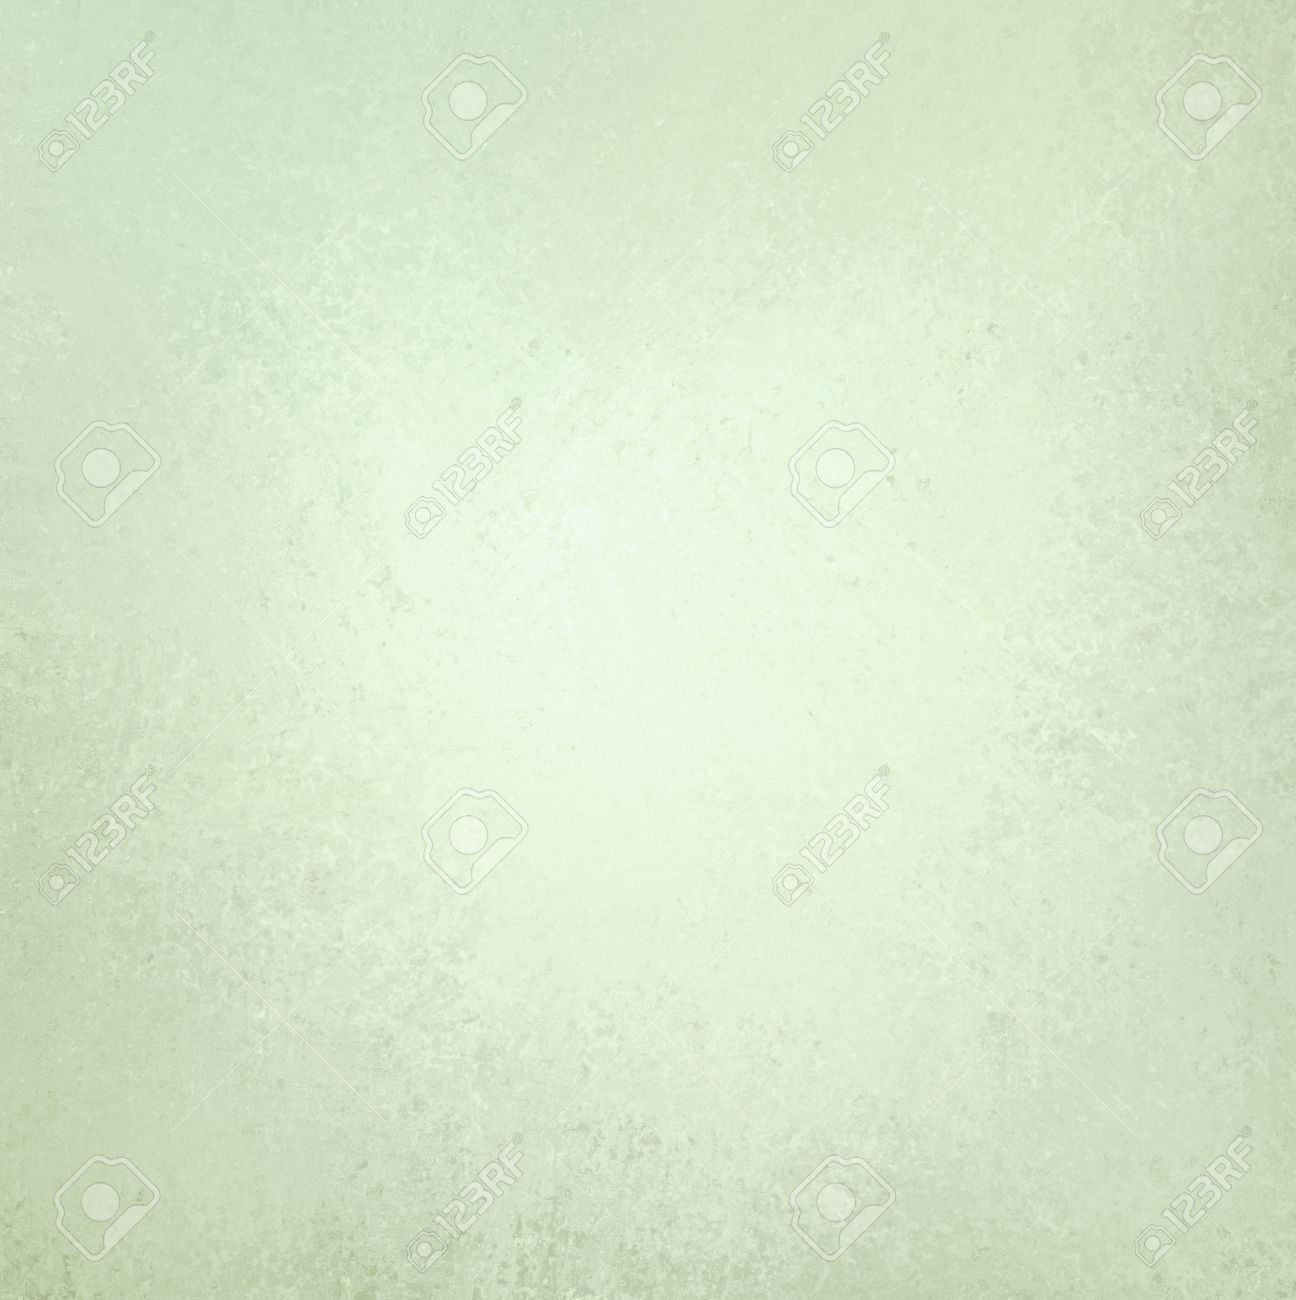 pale sky blue green background with soft pastel vintage background grunge texture and light solid design white background, cool plain wall or paper, old blue painted canvas for scrapbook parchmen Stock Photo - 24865339